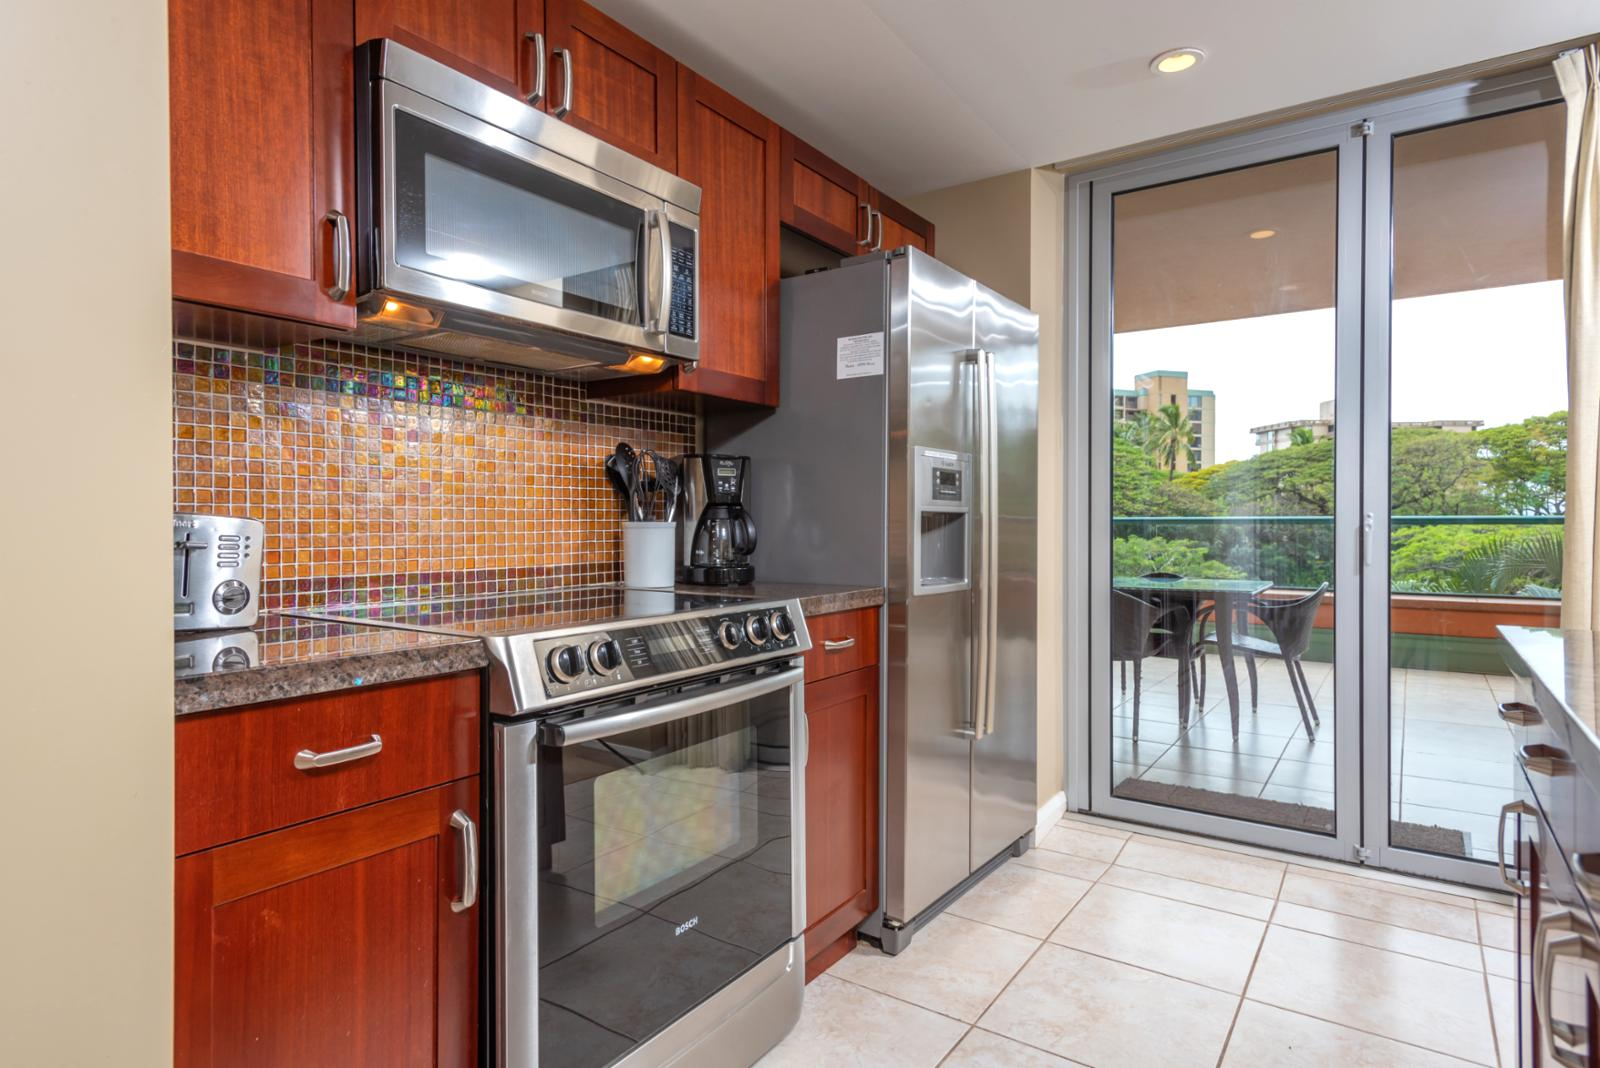 Luxury stainless steel appliances throughout